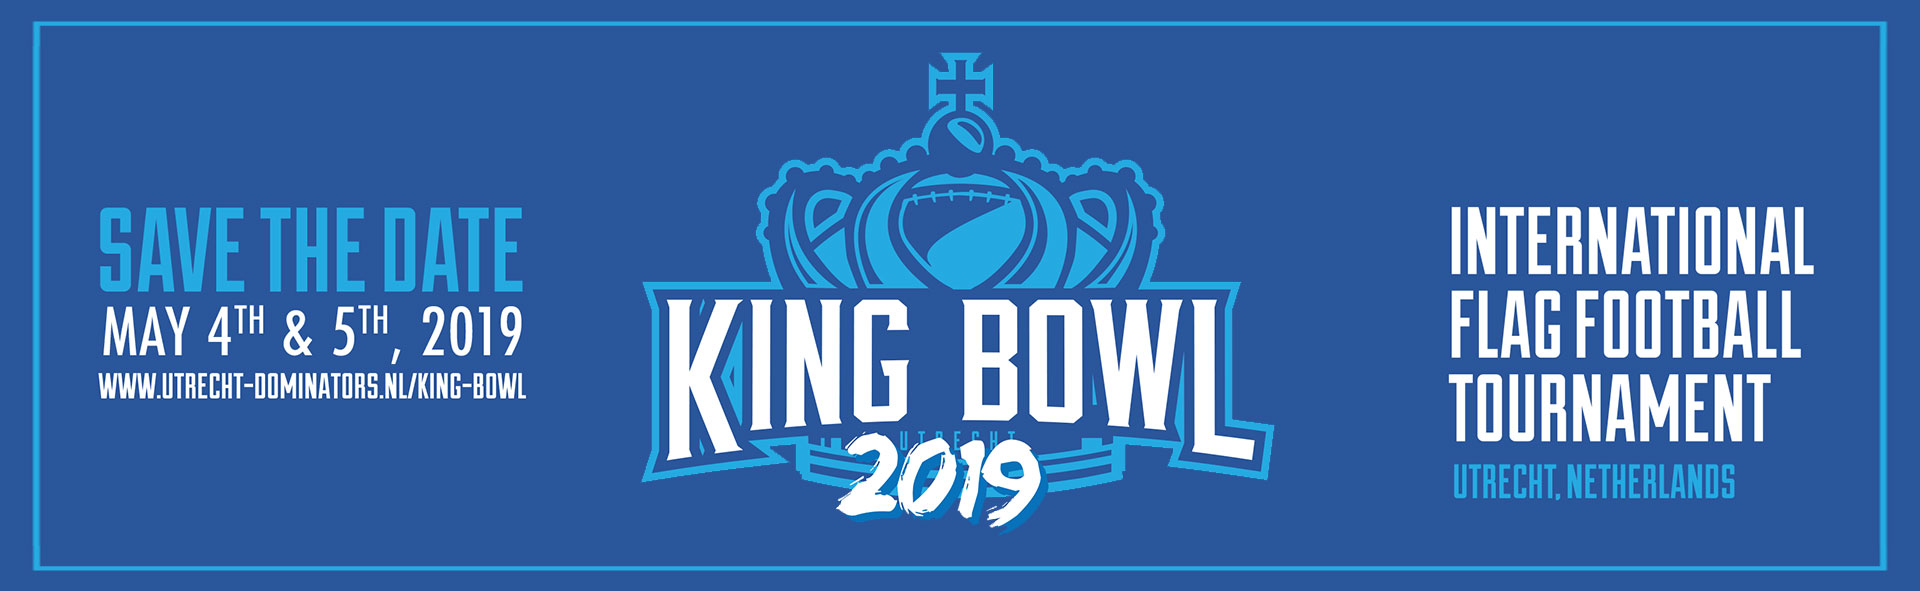 King-Bowl-2019-header-full